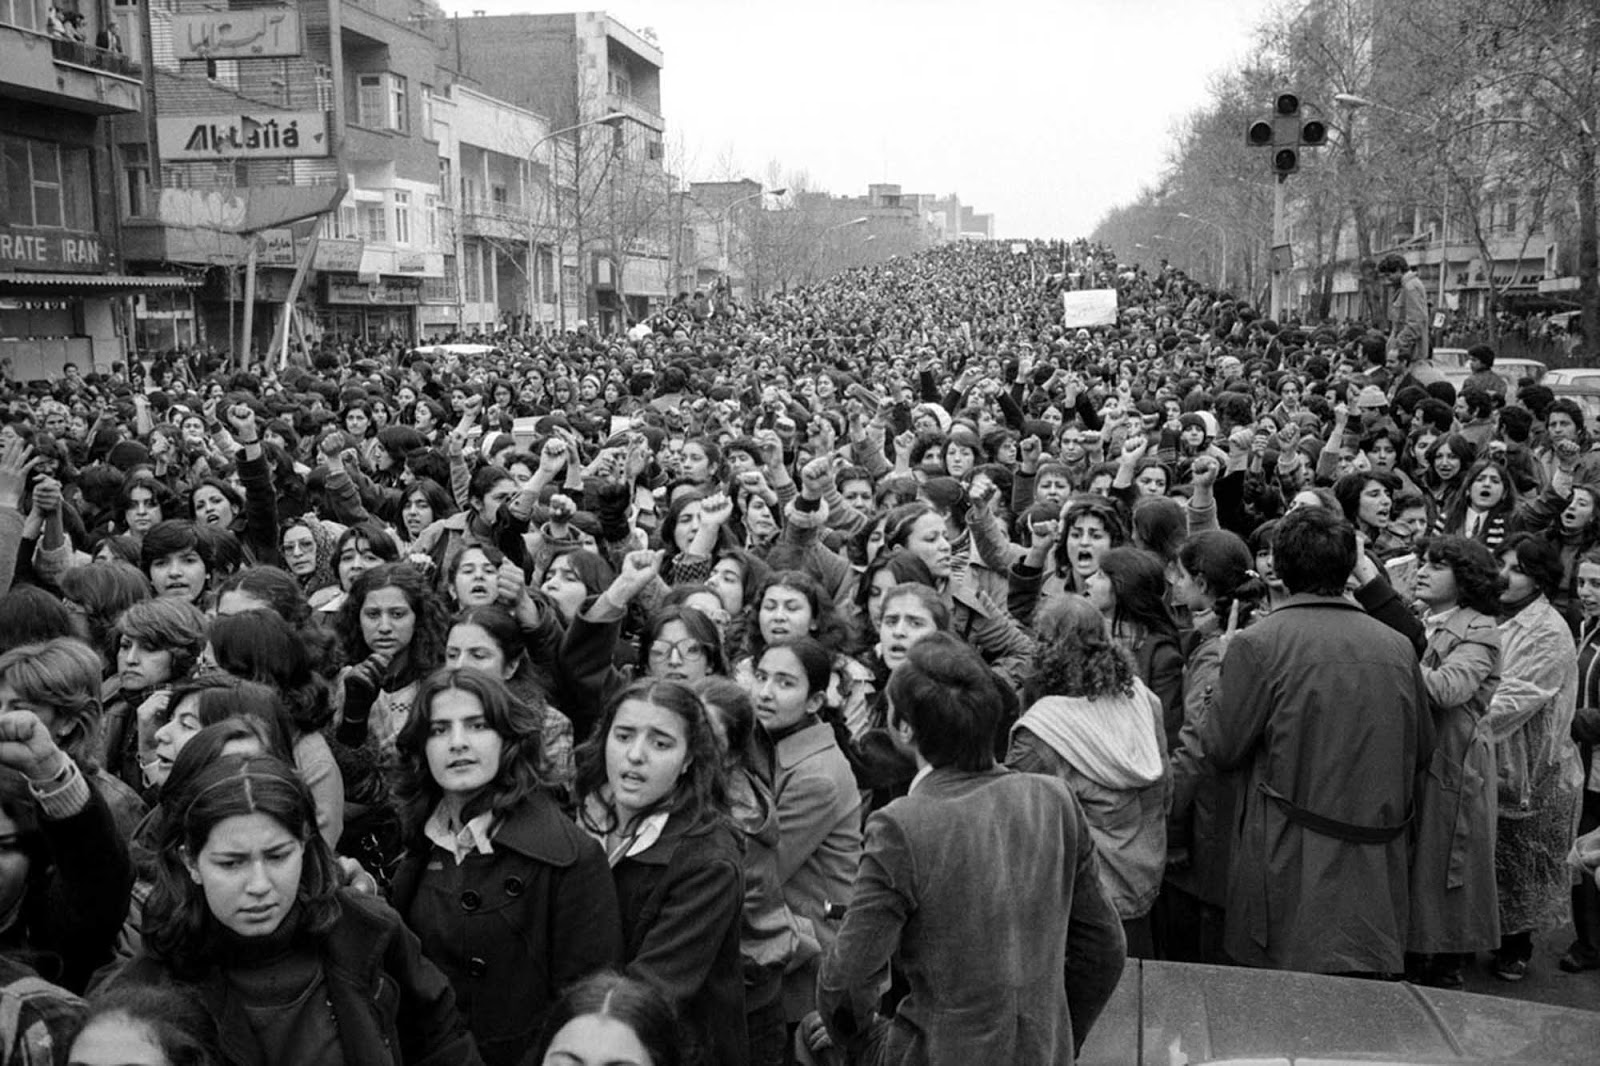 Iranian women protest hijab in 1979 b